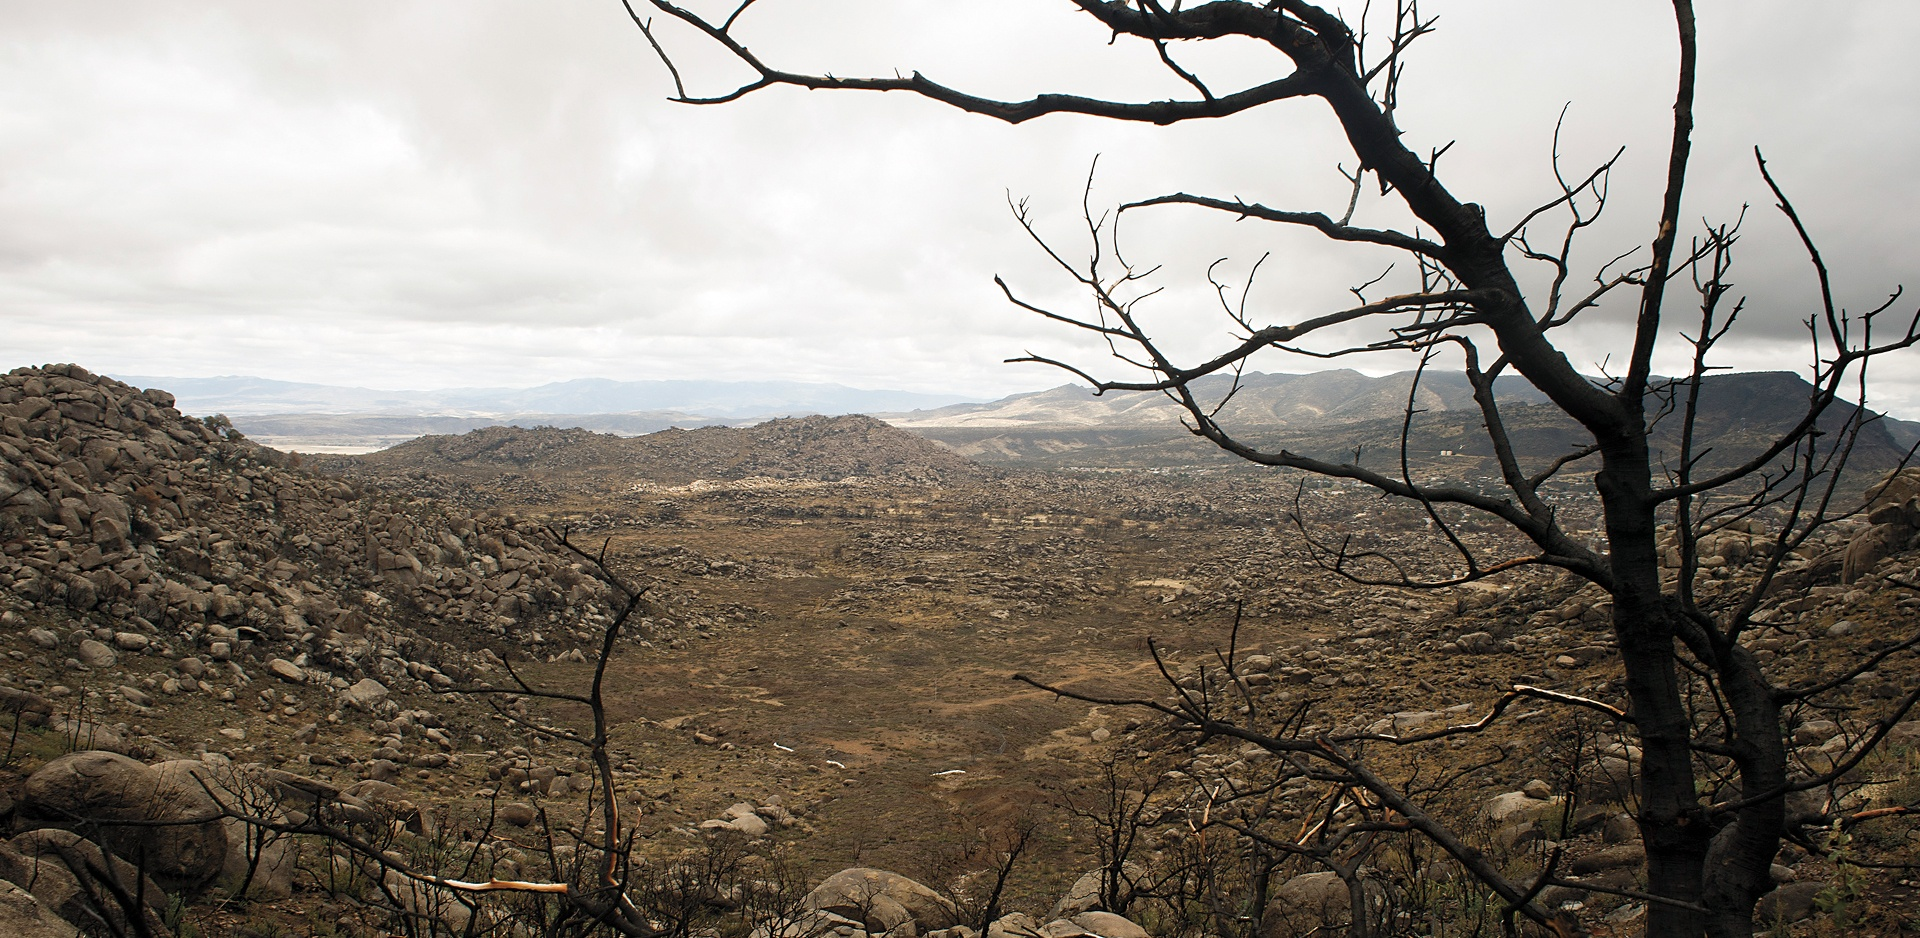 The Yarnell Disaster: What Caused the Deadliest Fire in 80 Years